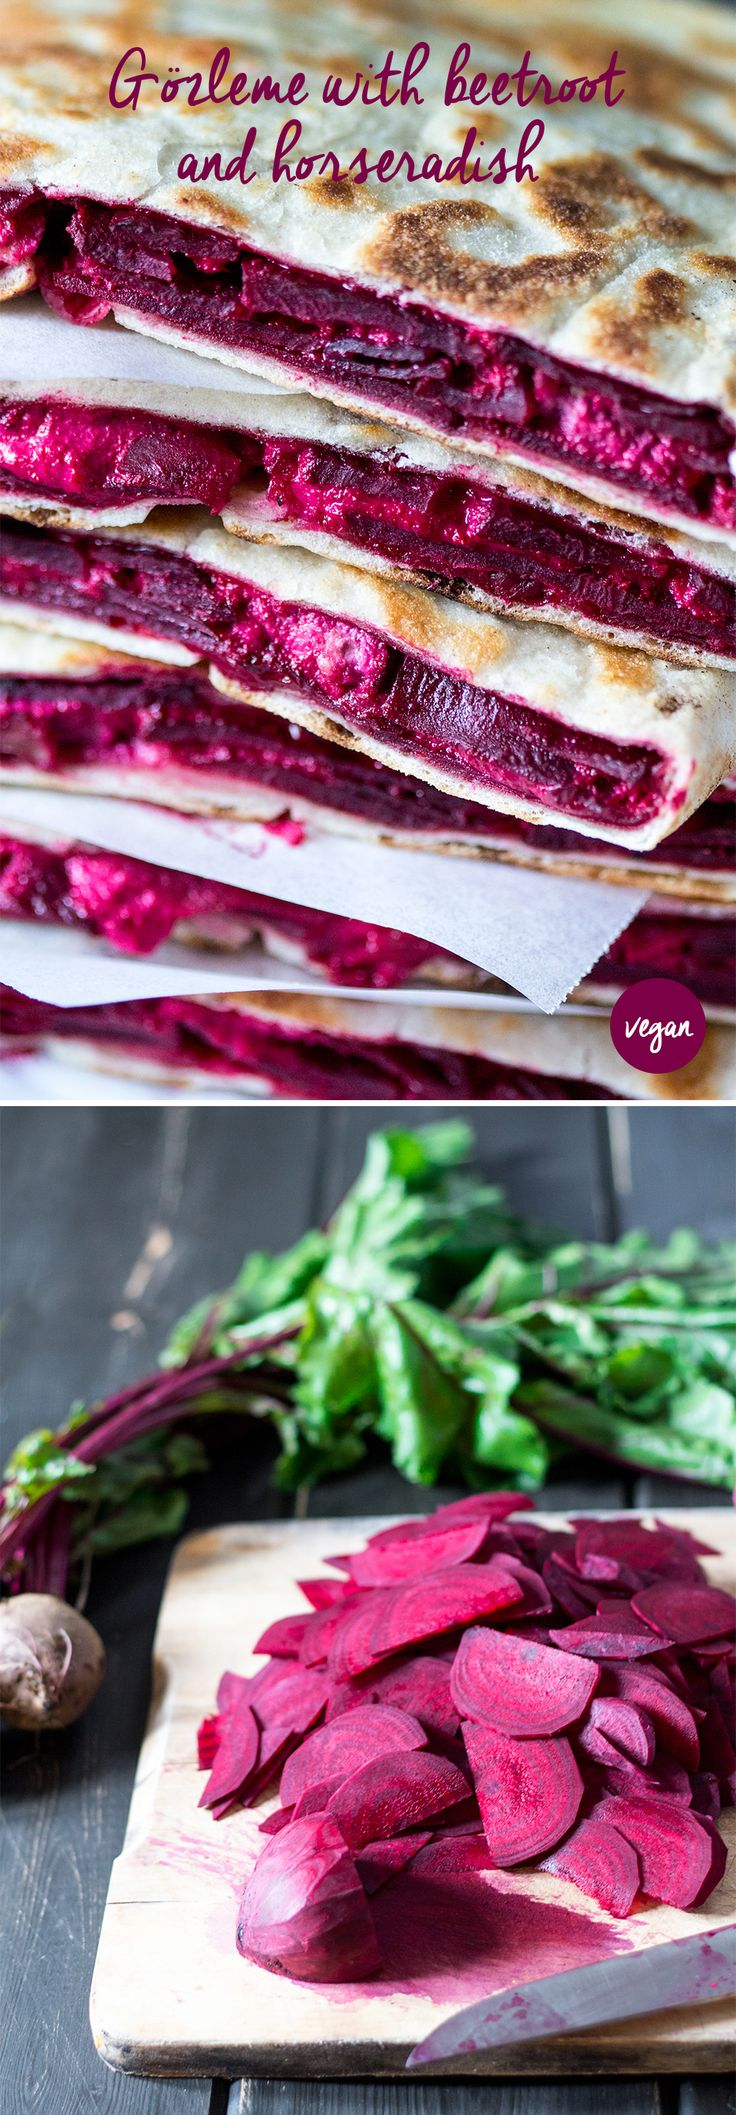 Delicious #Turkish #gozleme #straight from a #hot pan is the best #cold weather #lunch. This one is filled with a #beetroot and #horseradish #filling that's to die for. #recipe #recipes #vegan #vegetarian #sandwich